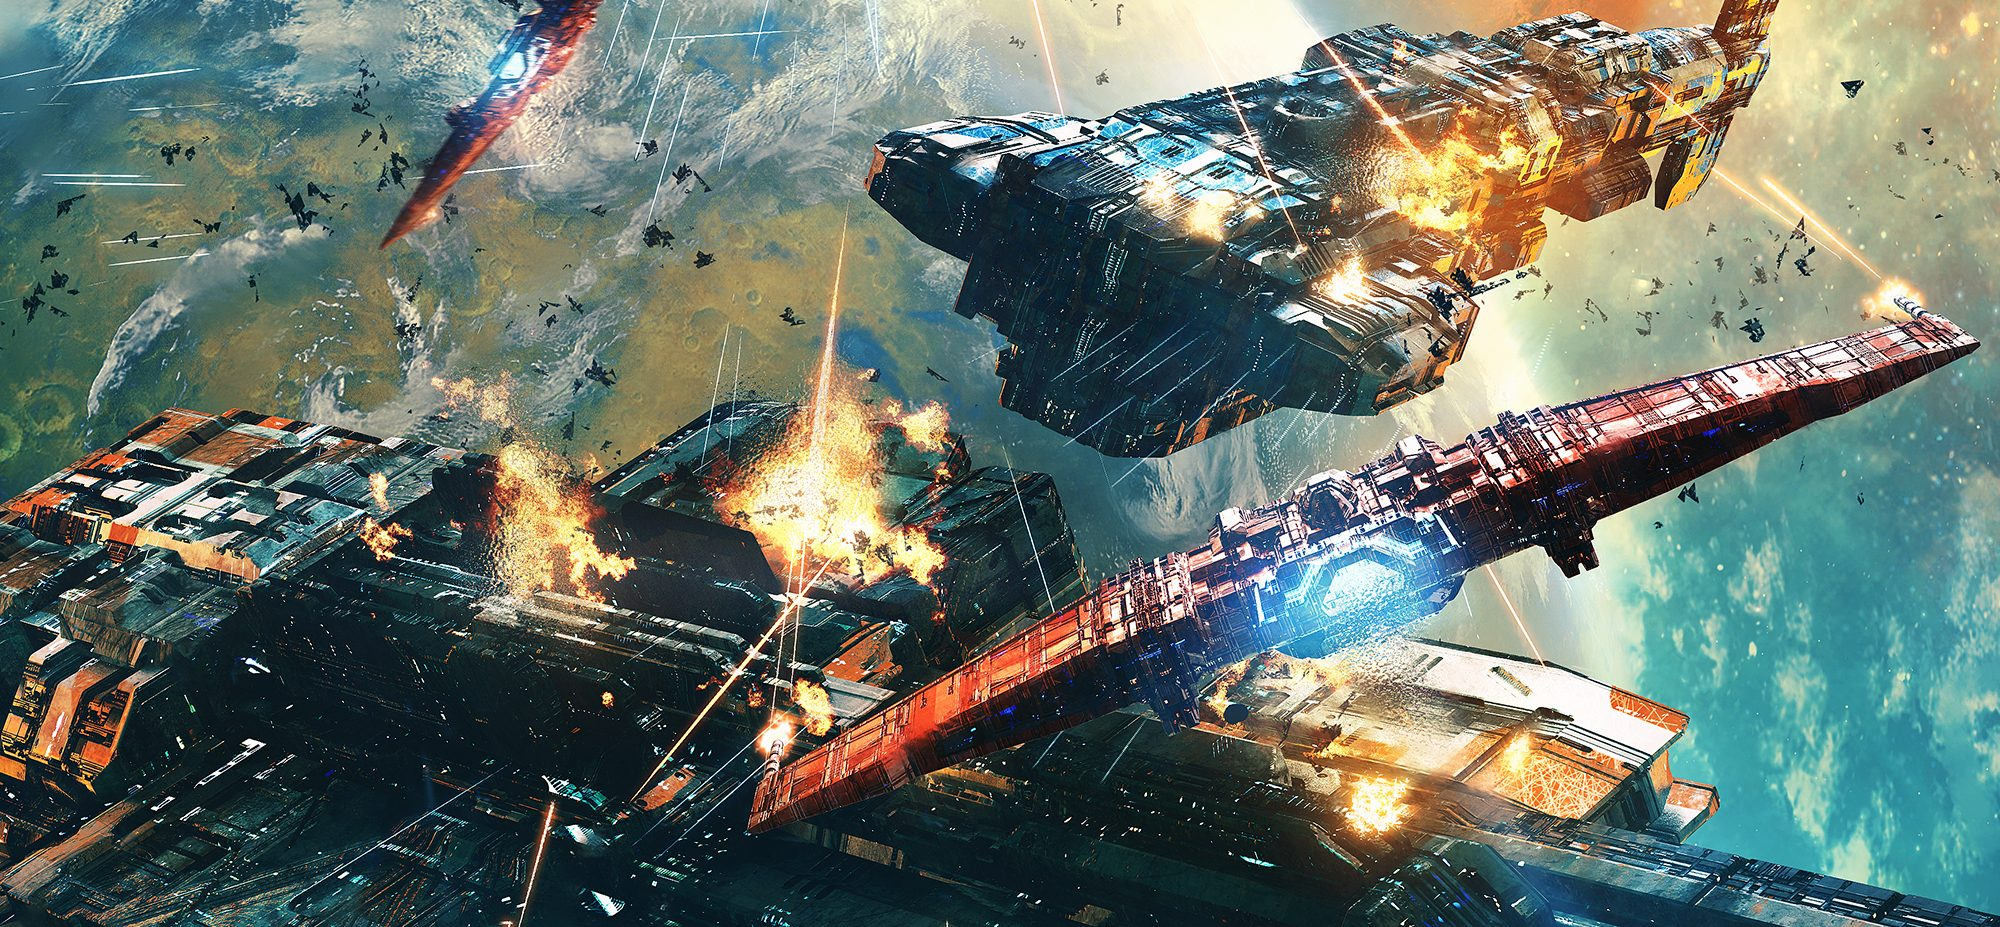 Illustration by Tom Edwards. spaceship fighting. All rights reserved by Tom Edwards